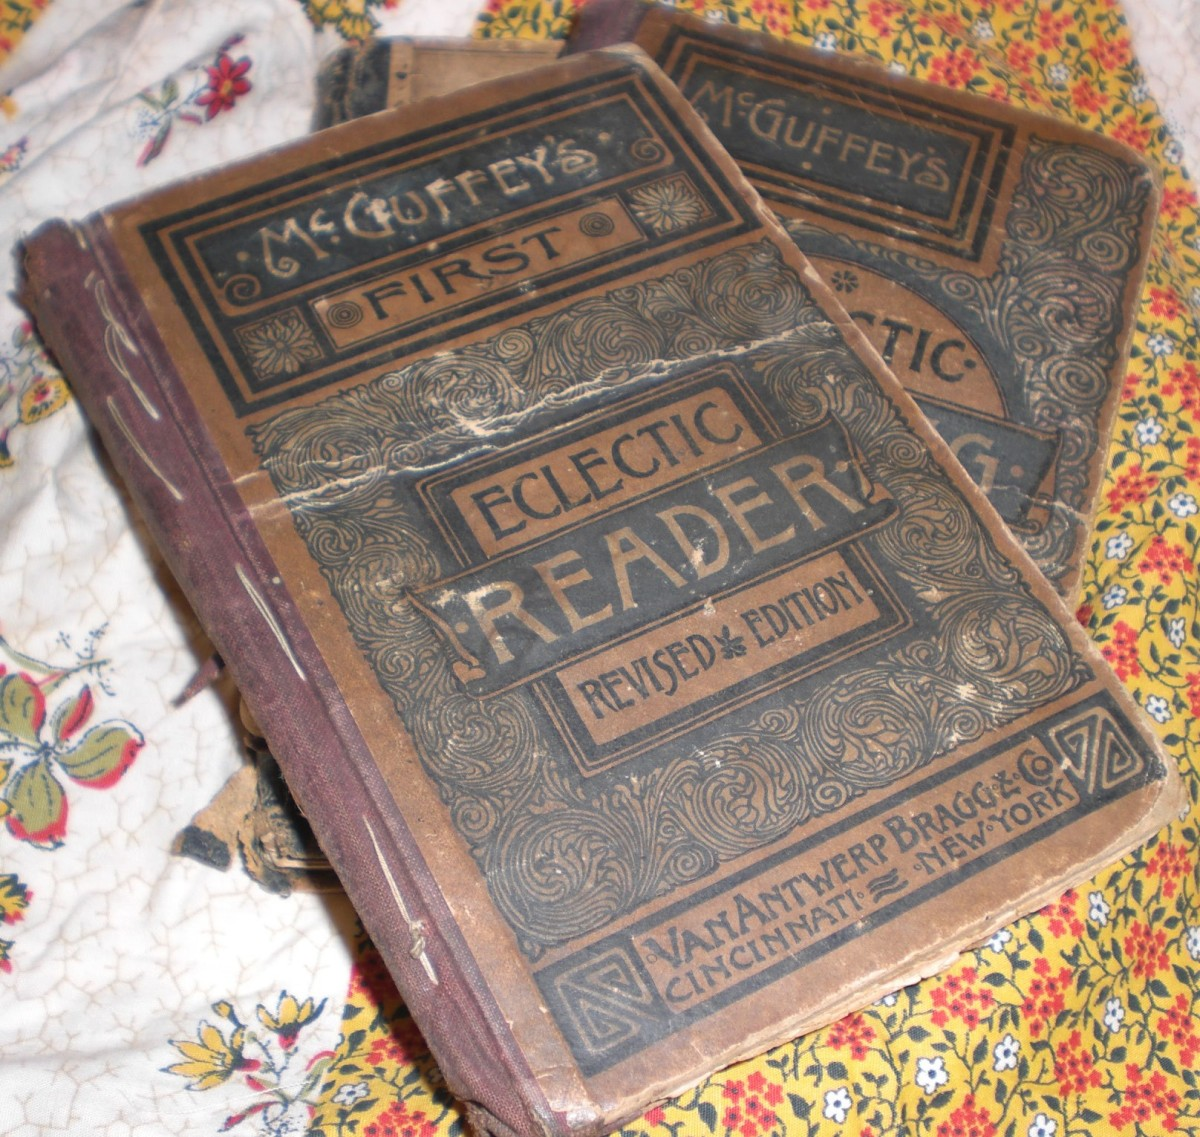 A RARE FIRST EDITION MCGUFFEY'S ECLECTIC READER